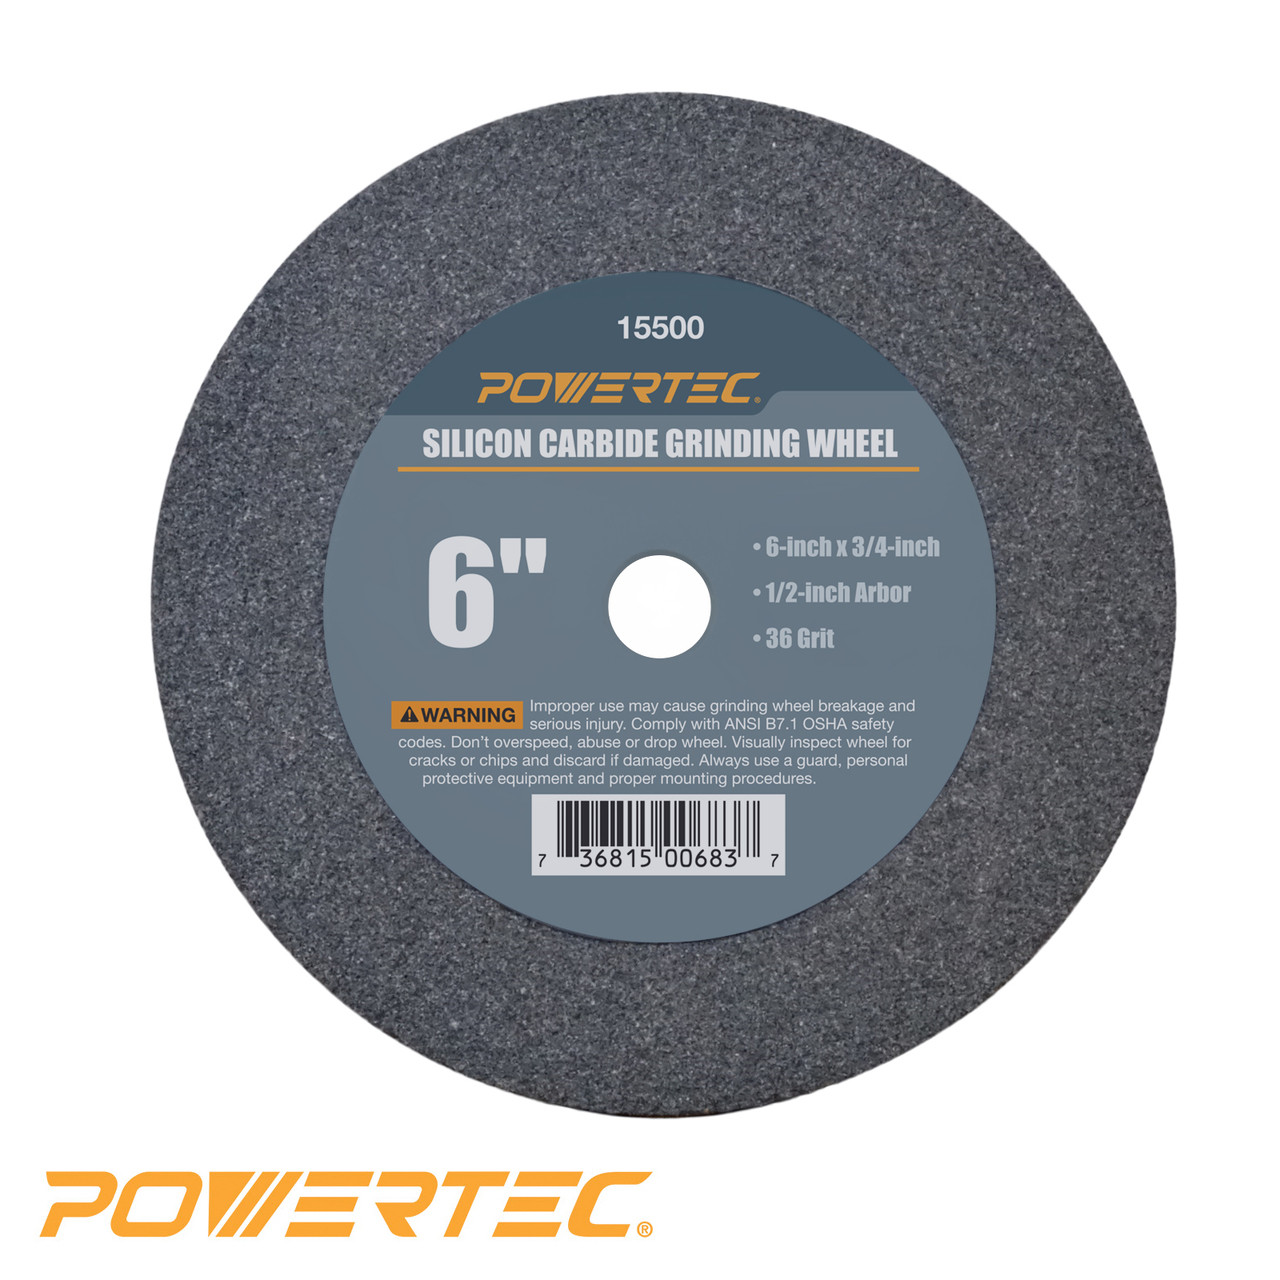 Silicon Carbide Grinding Wheel 6 Inch By 3 4 Inch 1 2